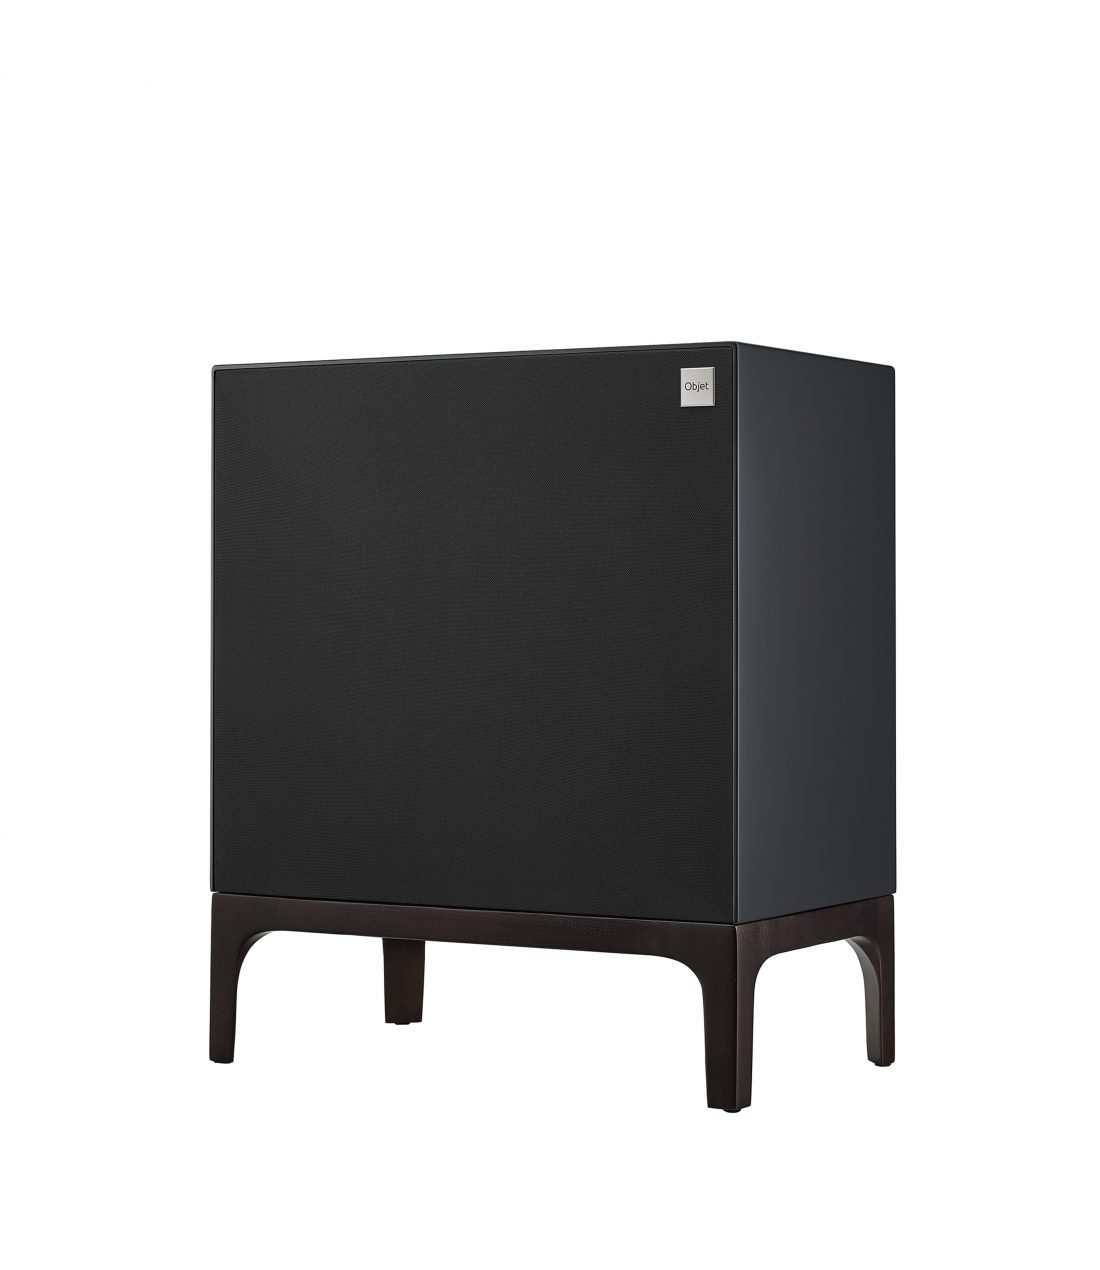 Another side view of LG OBJET Speaker System positioned at a 15-degree angle